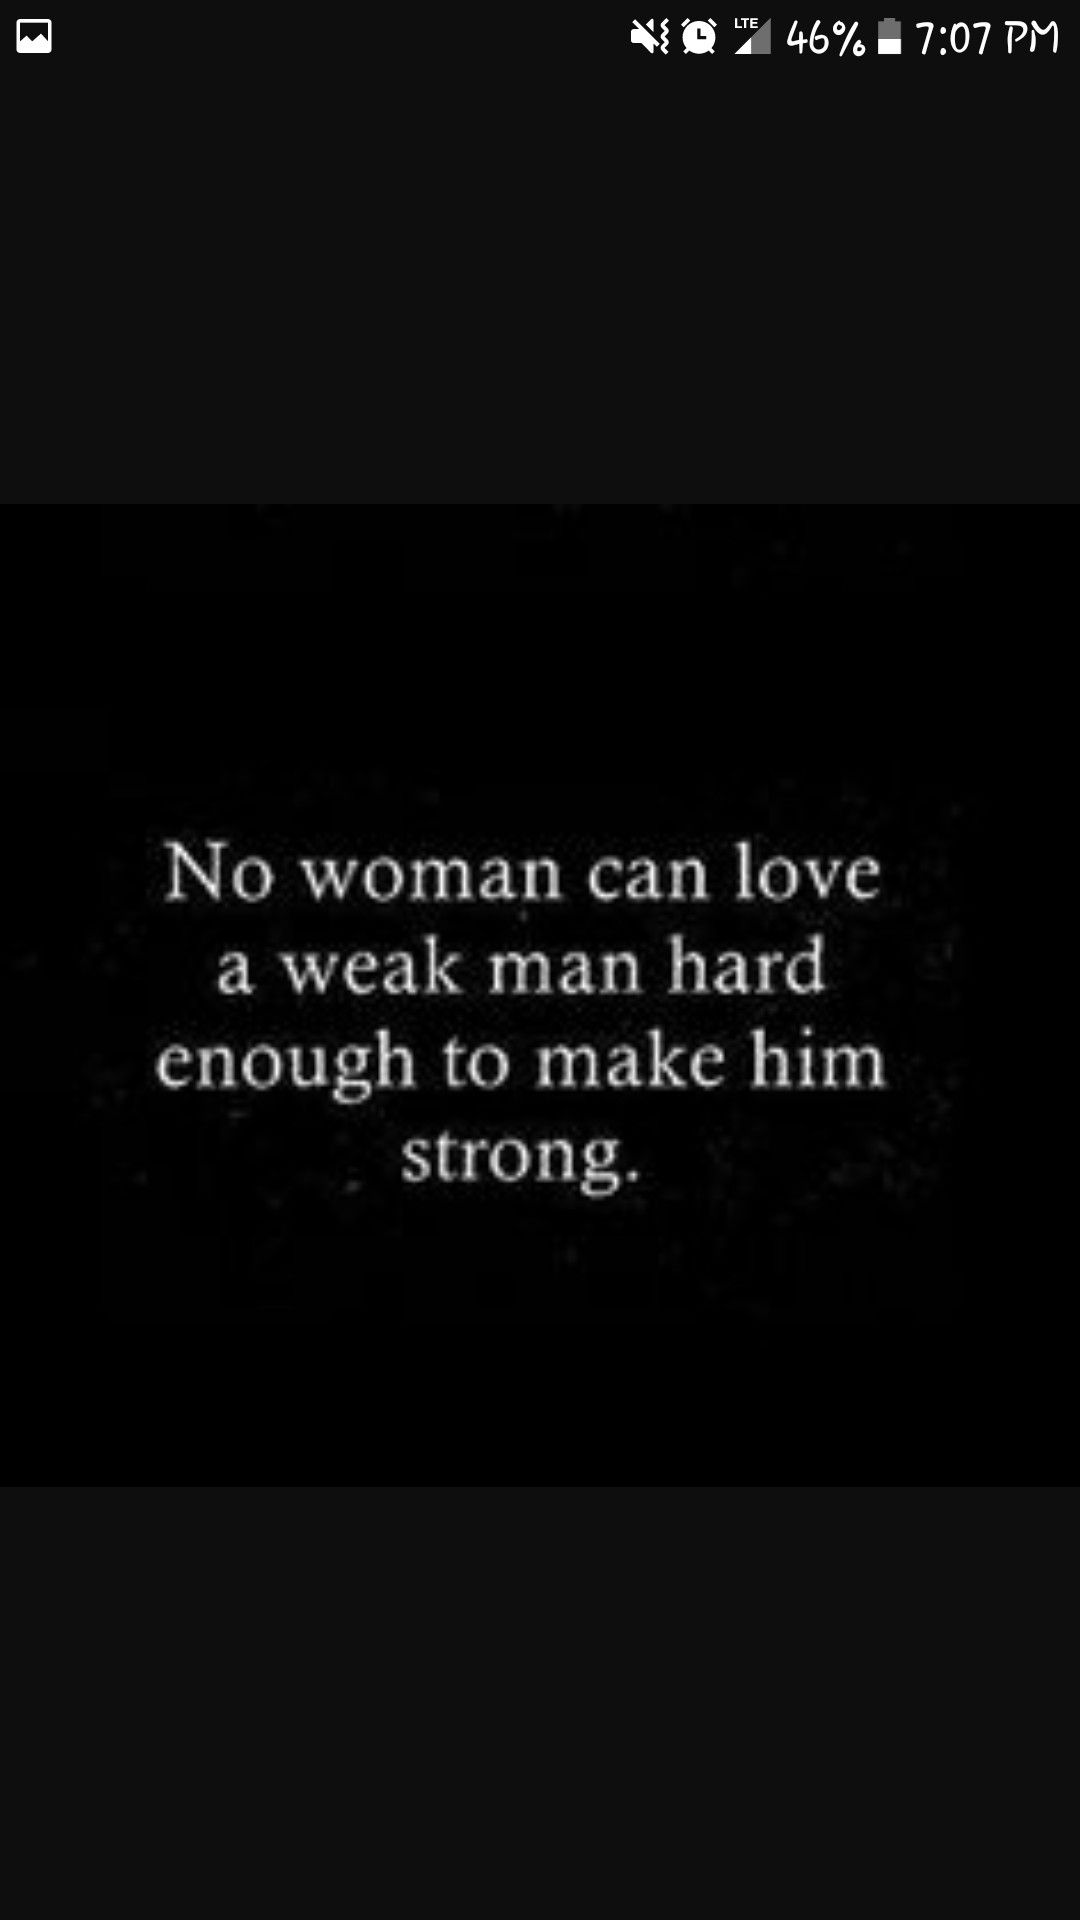 Strong Life Quote But A Woman Can Make A Tired But Strong Man Be Back To His